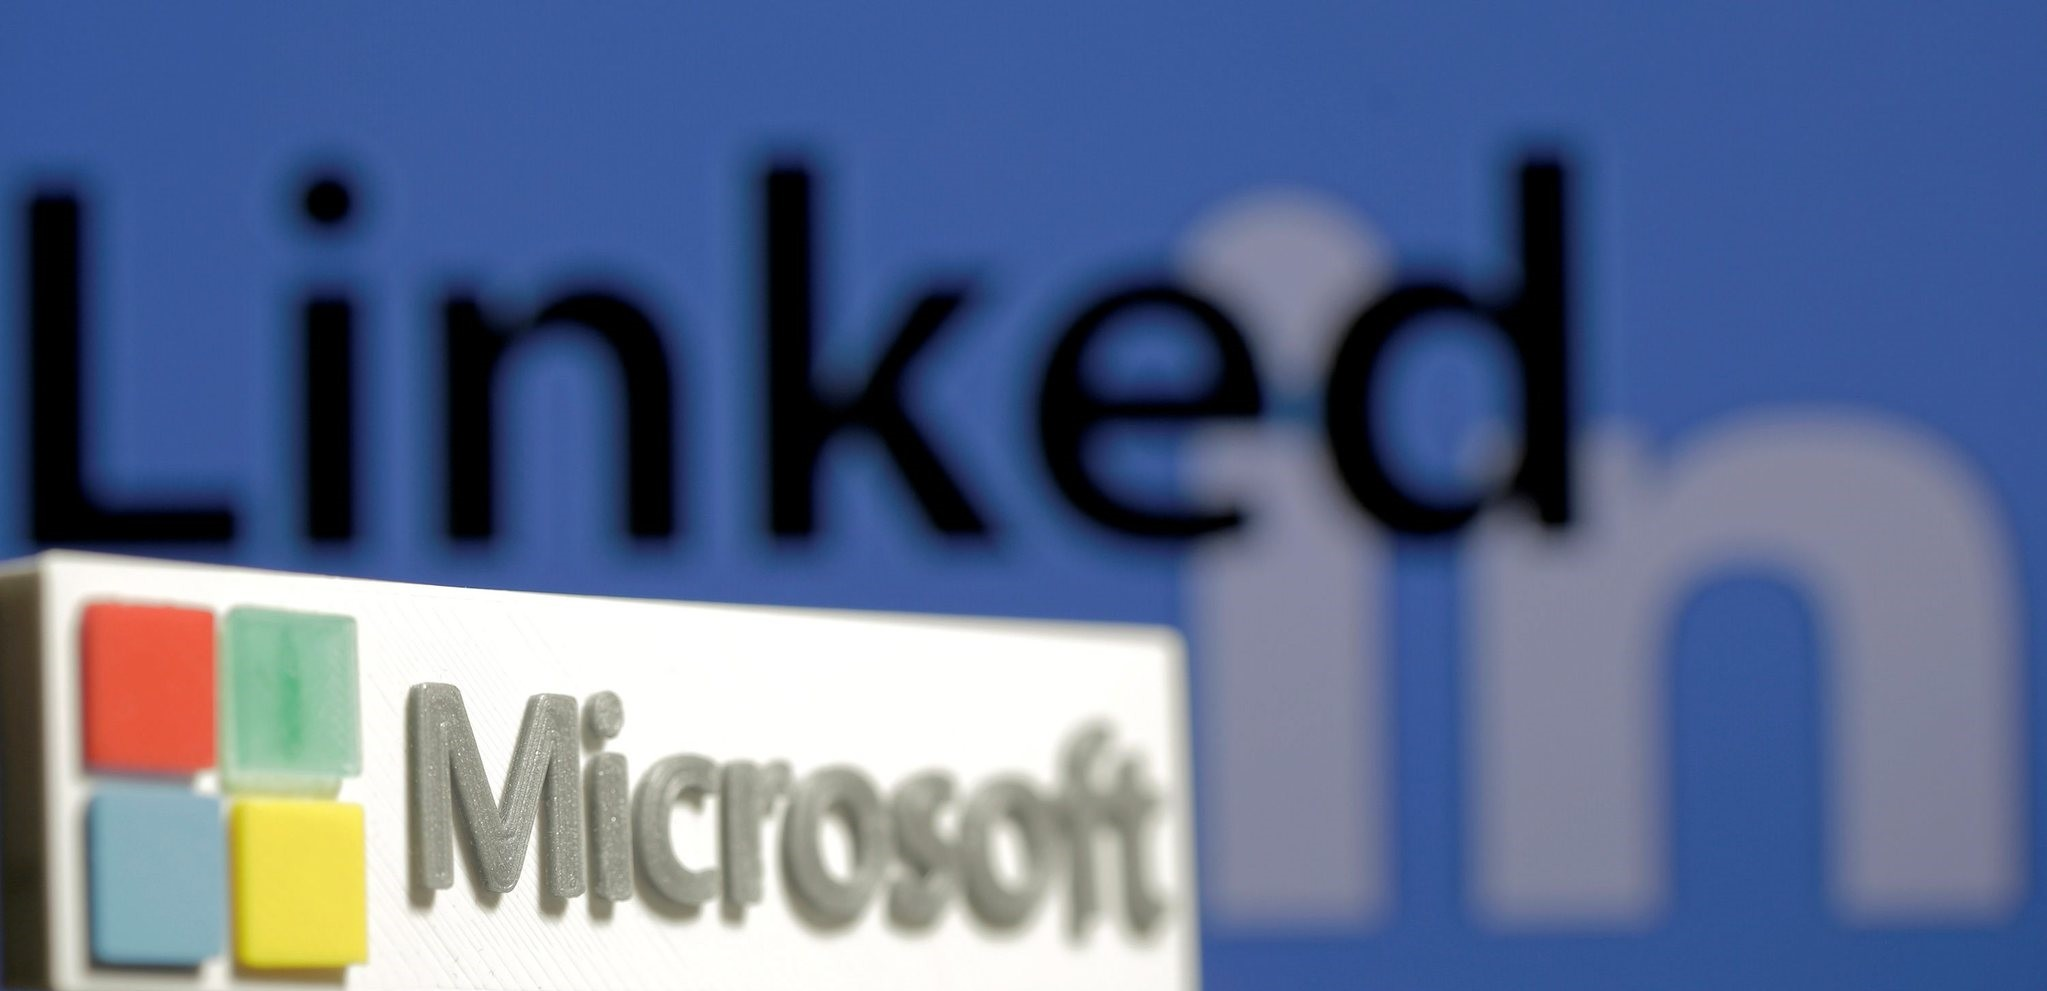 A 3D printed logo of Microsoft is seen in front of a displayed LinkedIn logo in this illustration taken June 13, 2016. (REUTERS Photo)